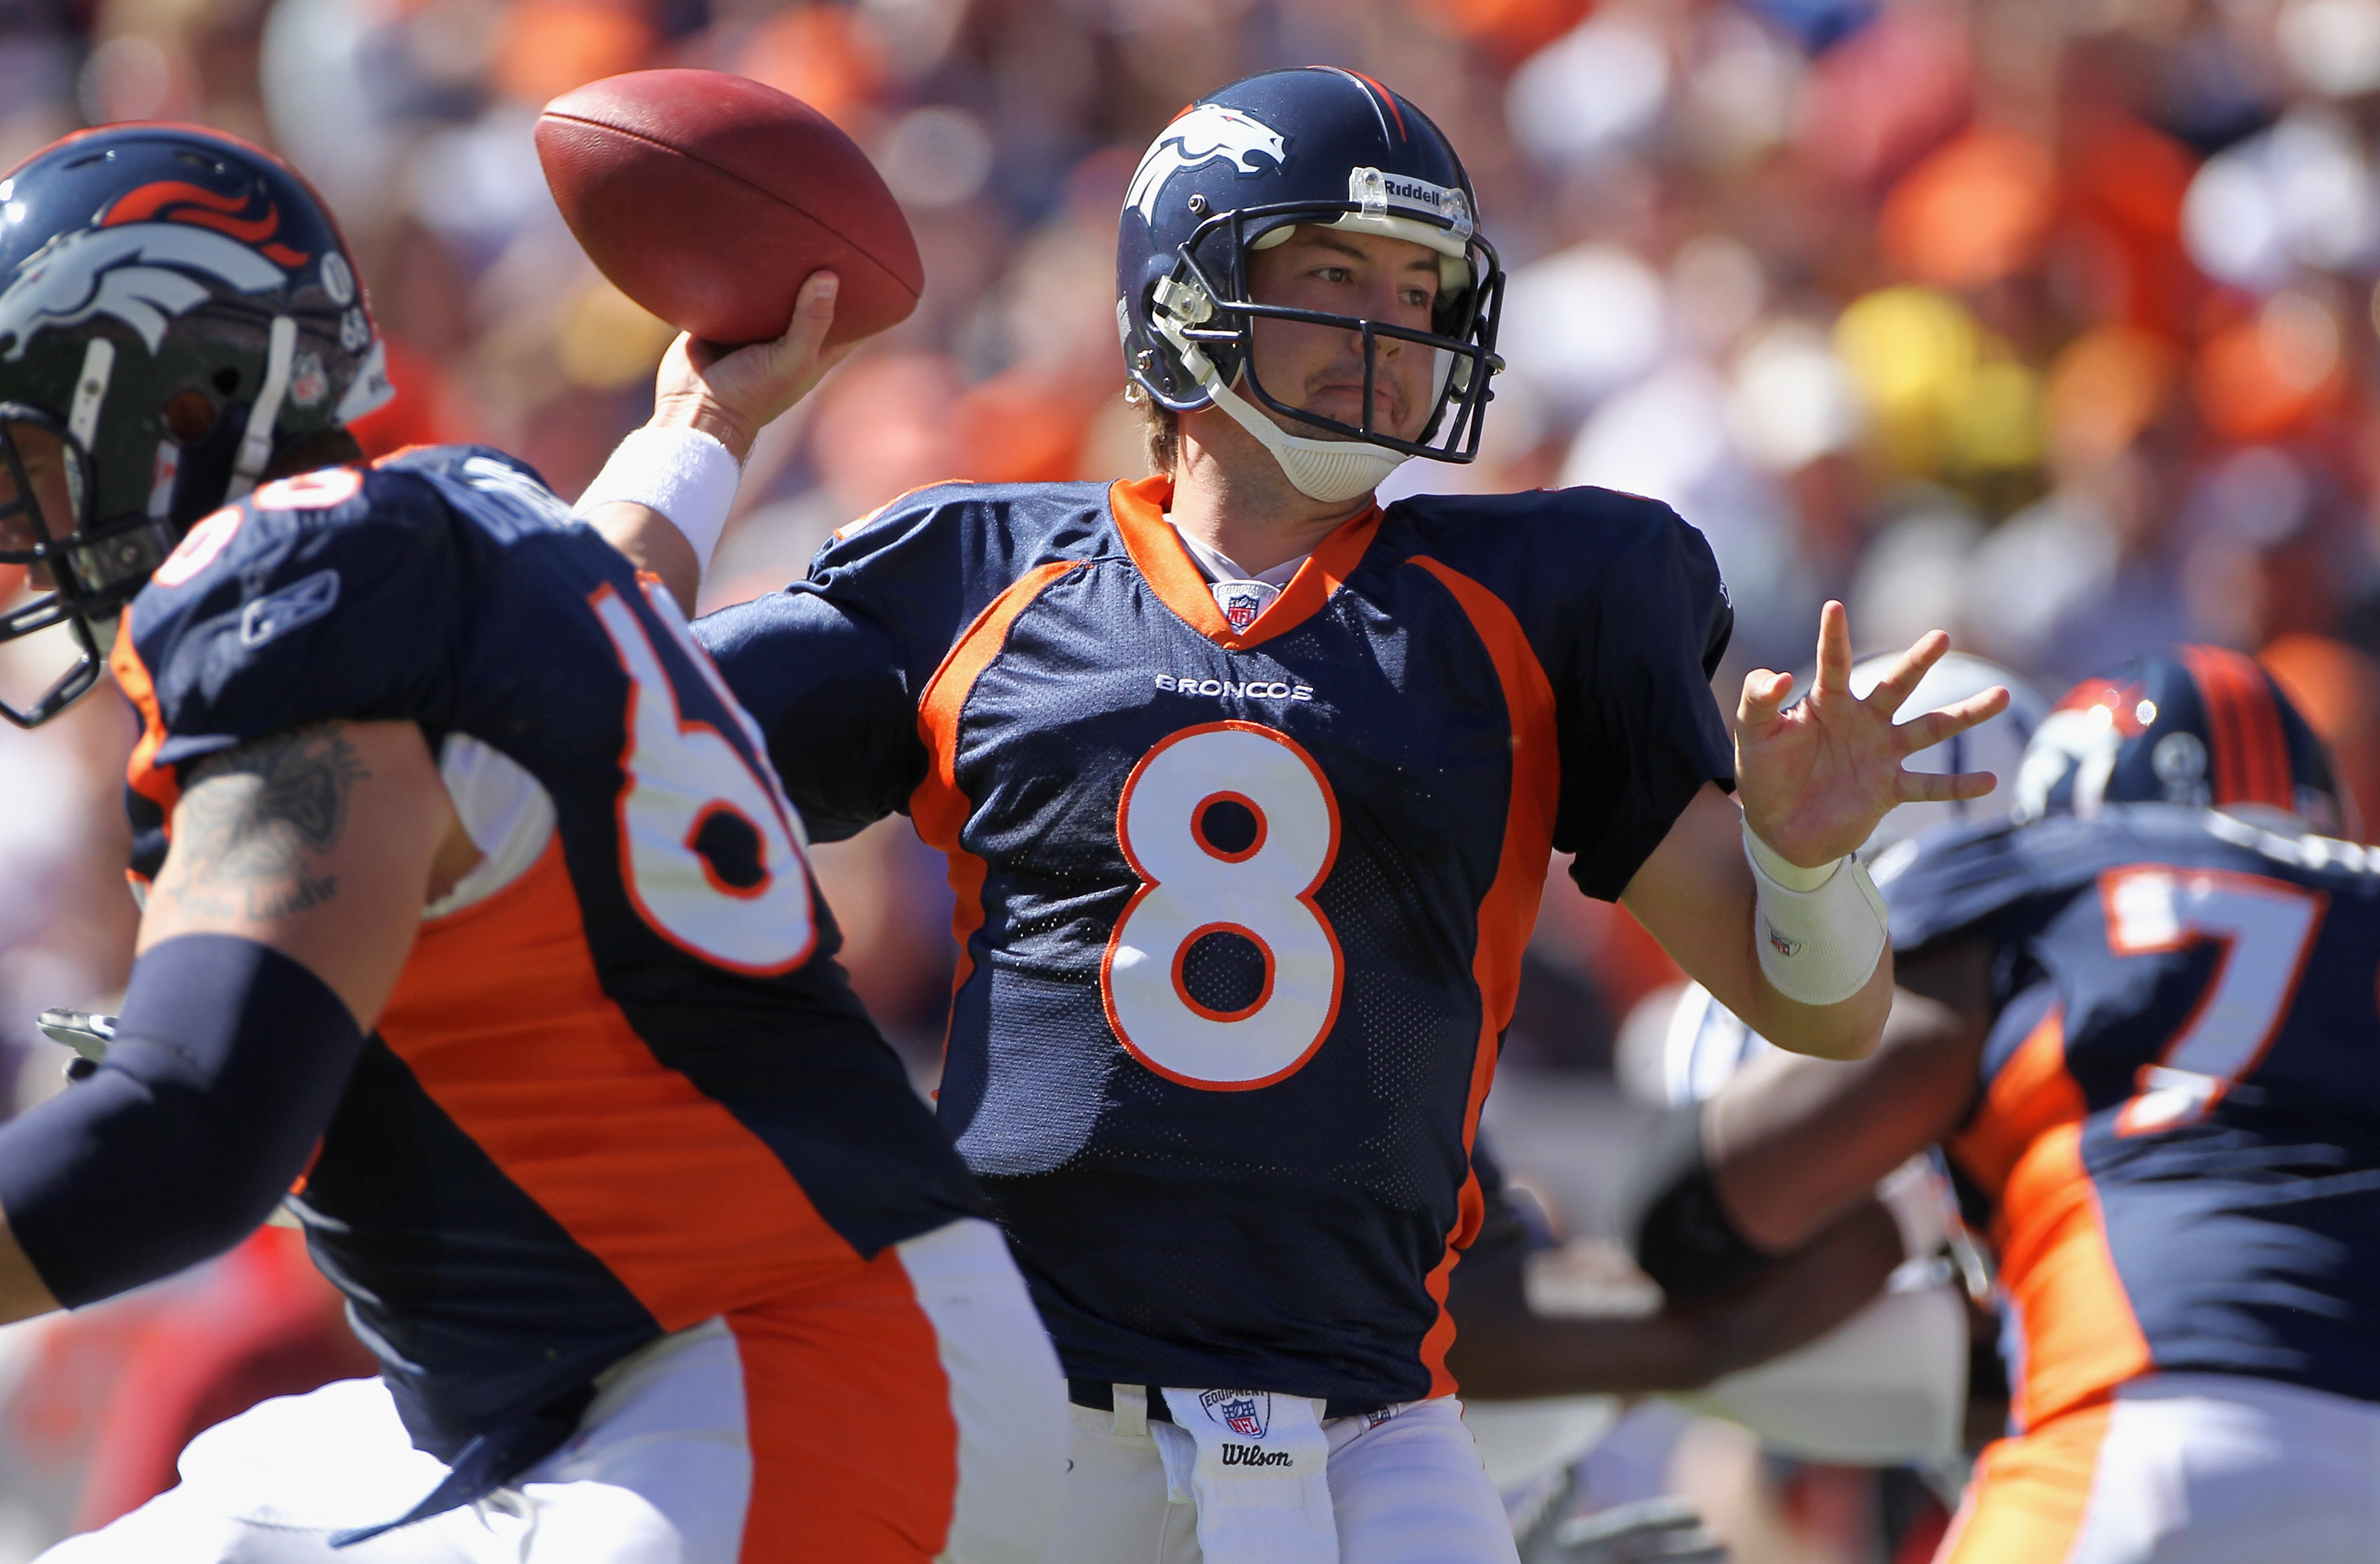 DENVER - SEPTEMBER 26:  Quarterback Kyle Orton #8 of the Denver Broncos delivers a pass against the Indianapolis Colts at INVESCO Field at Mile High on September 26, 2010 in Denver, Colorado.  (Photo by Doug Pensinger/Getty Images)